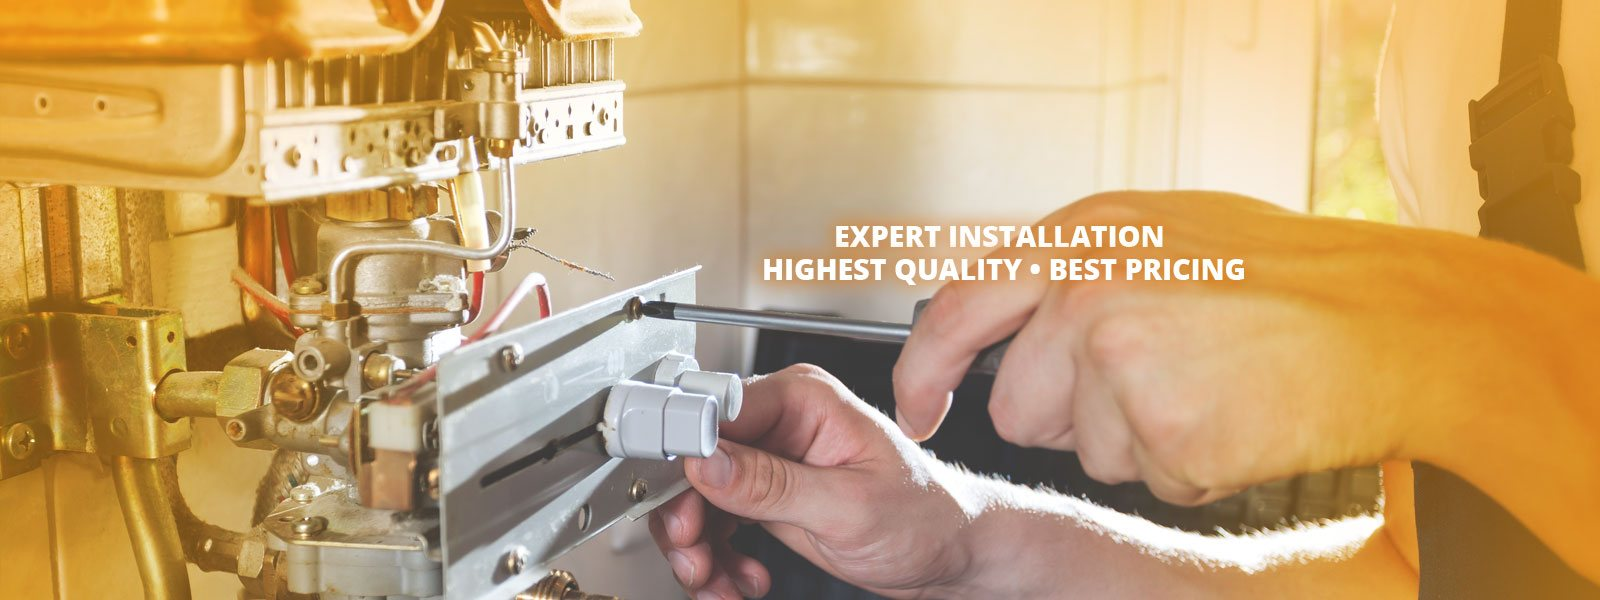 Expert Installation, Highest Quality, Best Pricing